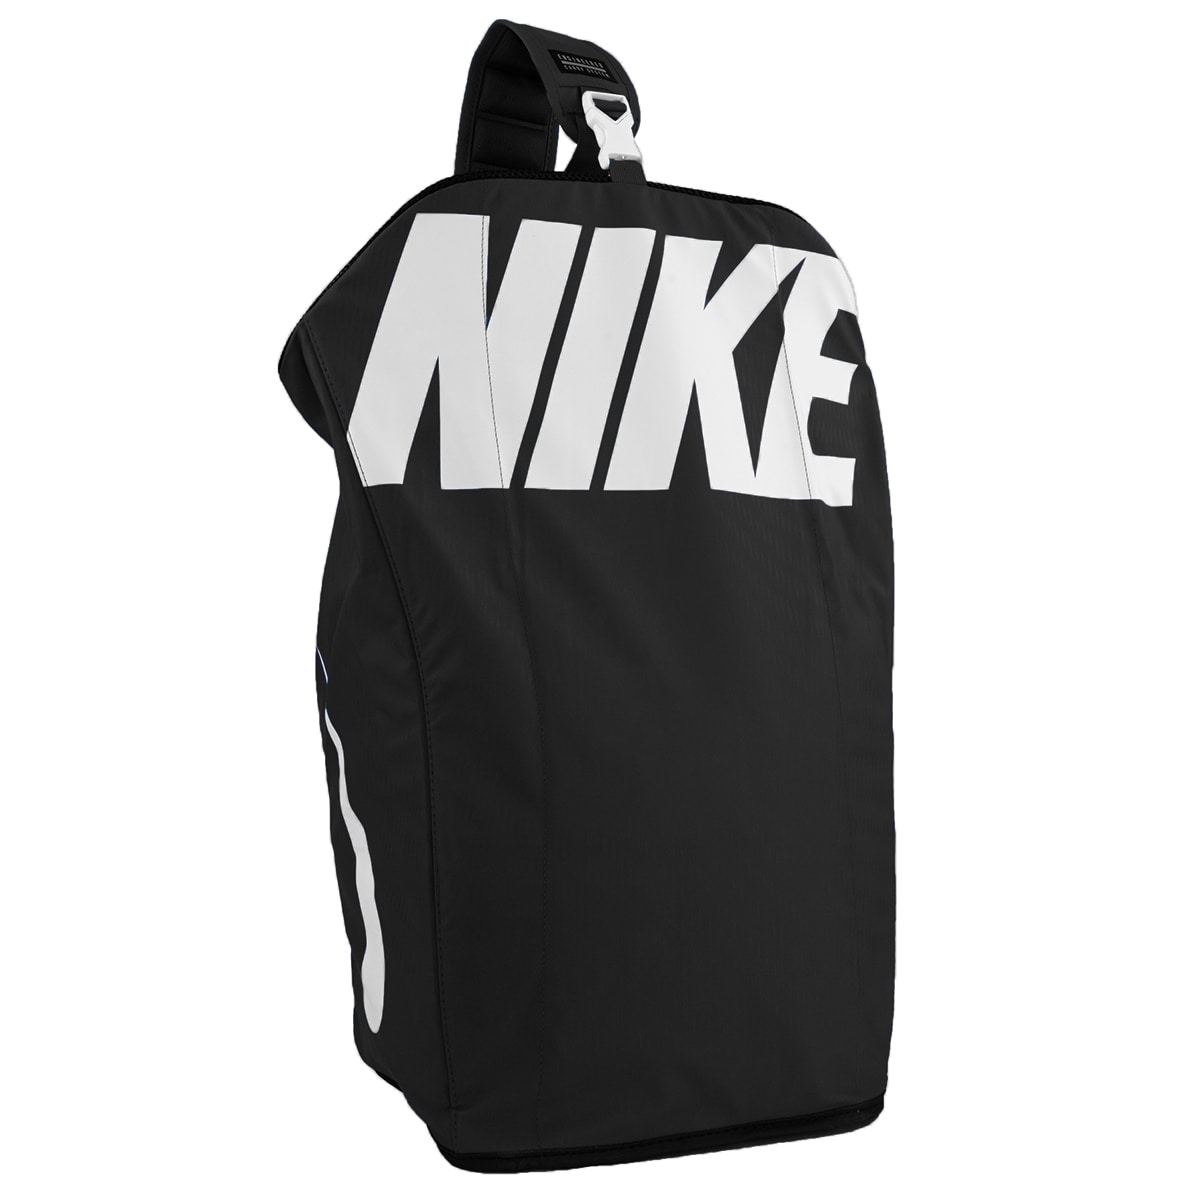 3b9c831e6b66 Shop Nike Alpha Adapt Crossbody Medium Duffel Bag - Free Shipping Today -  Overstock - 23622557